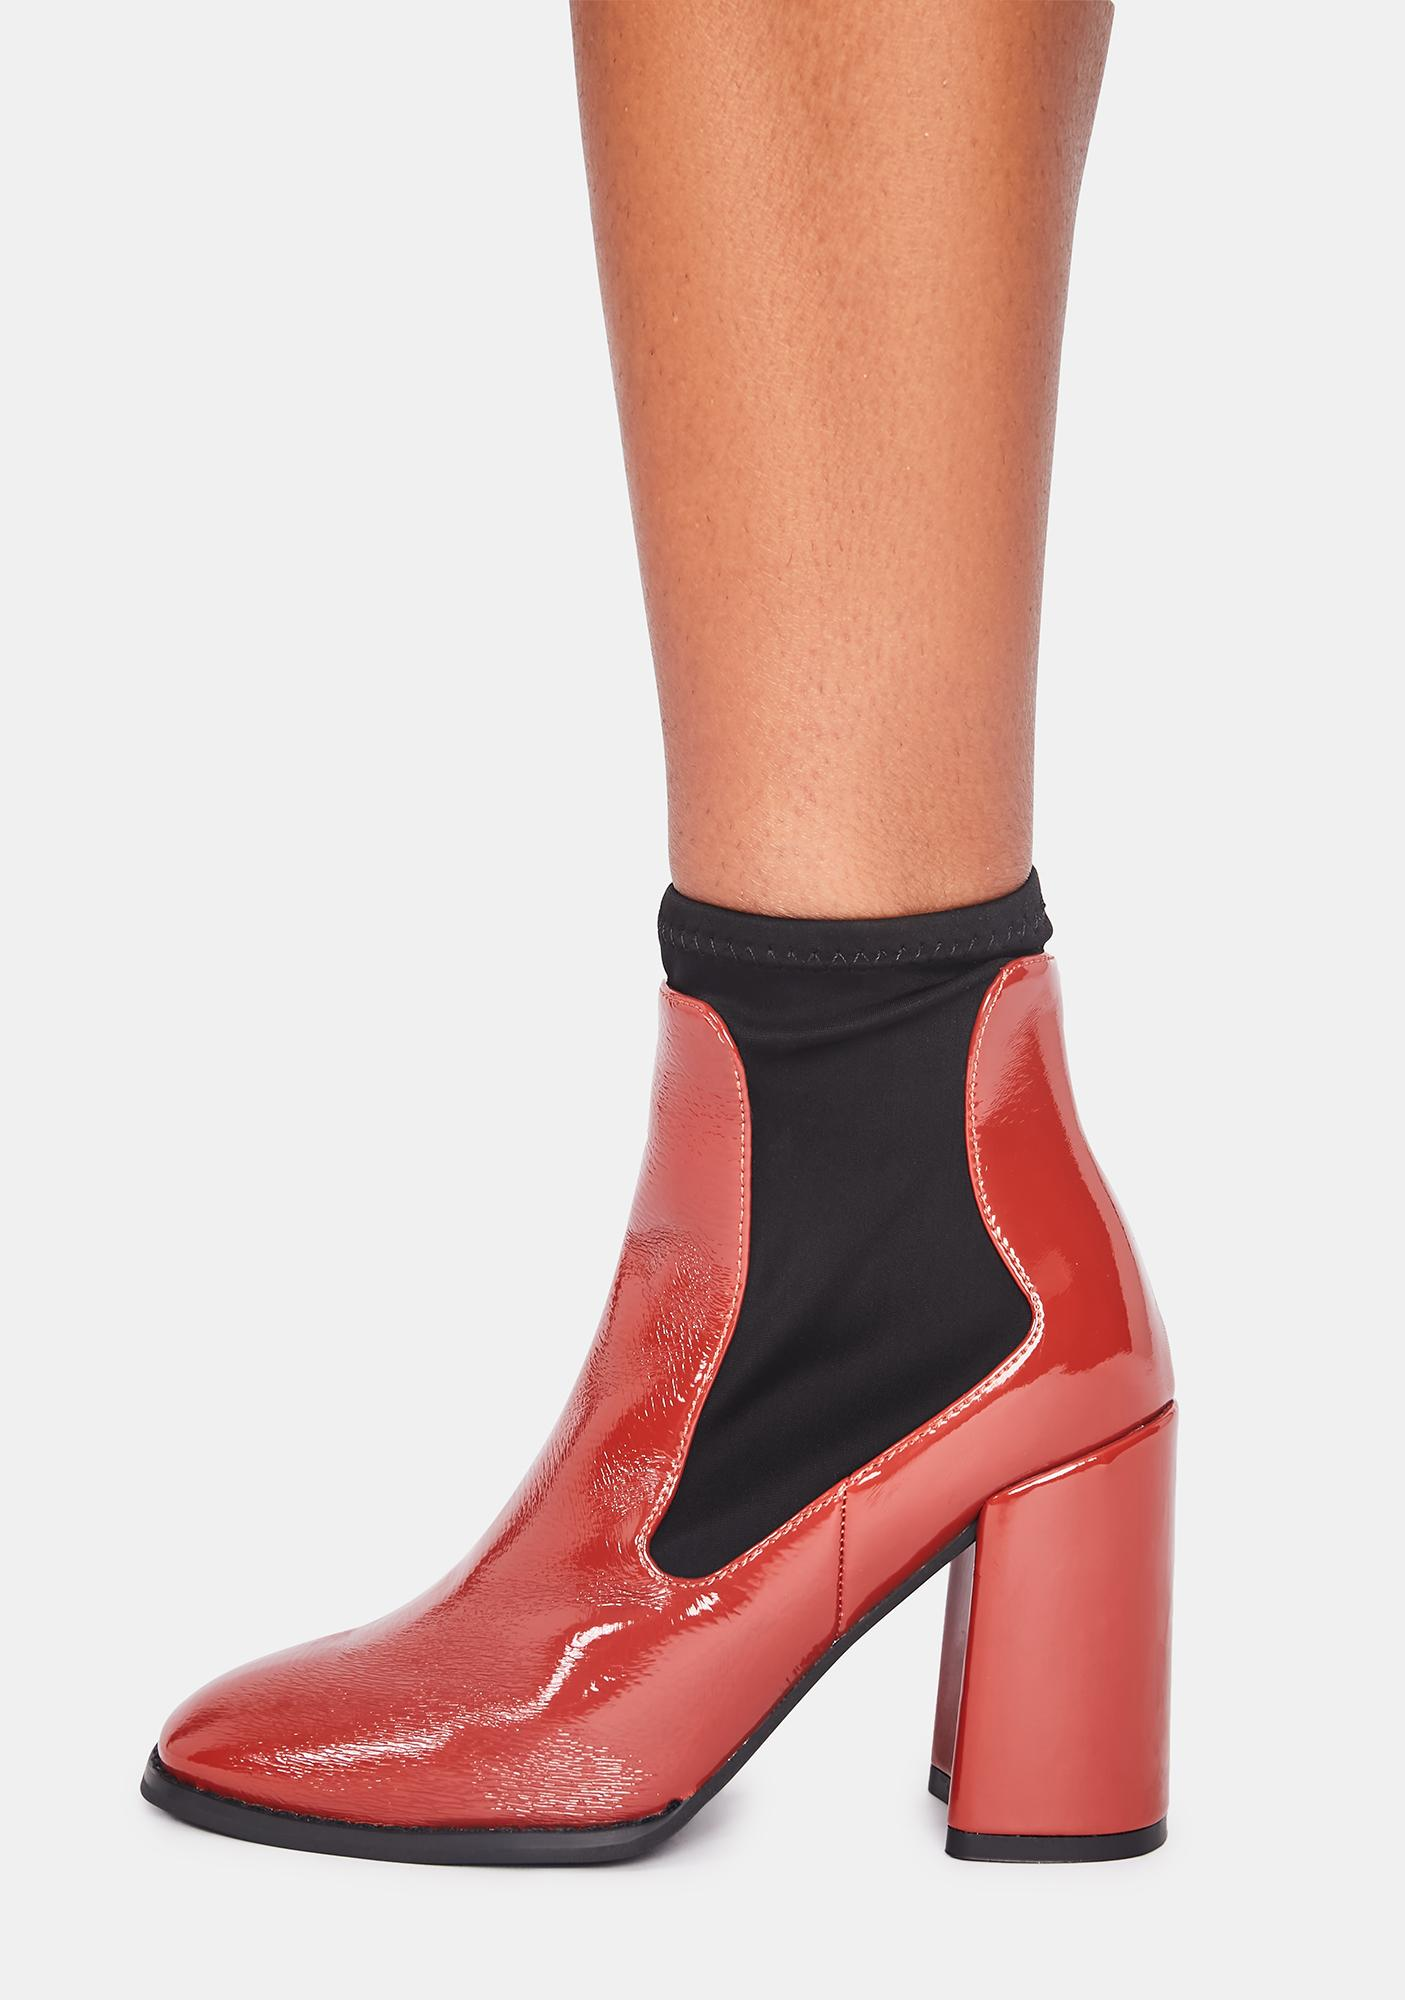 Cherry Toe The Line Ankle Boots